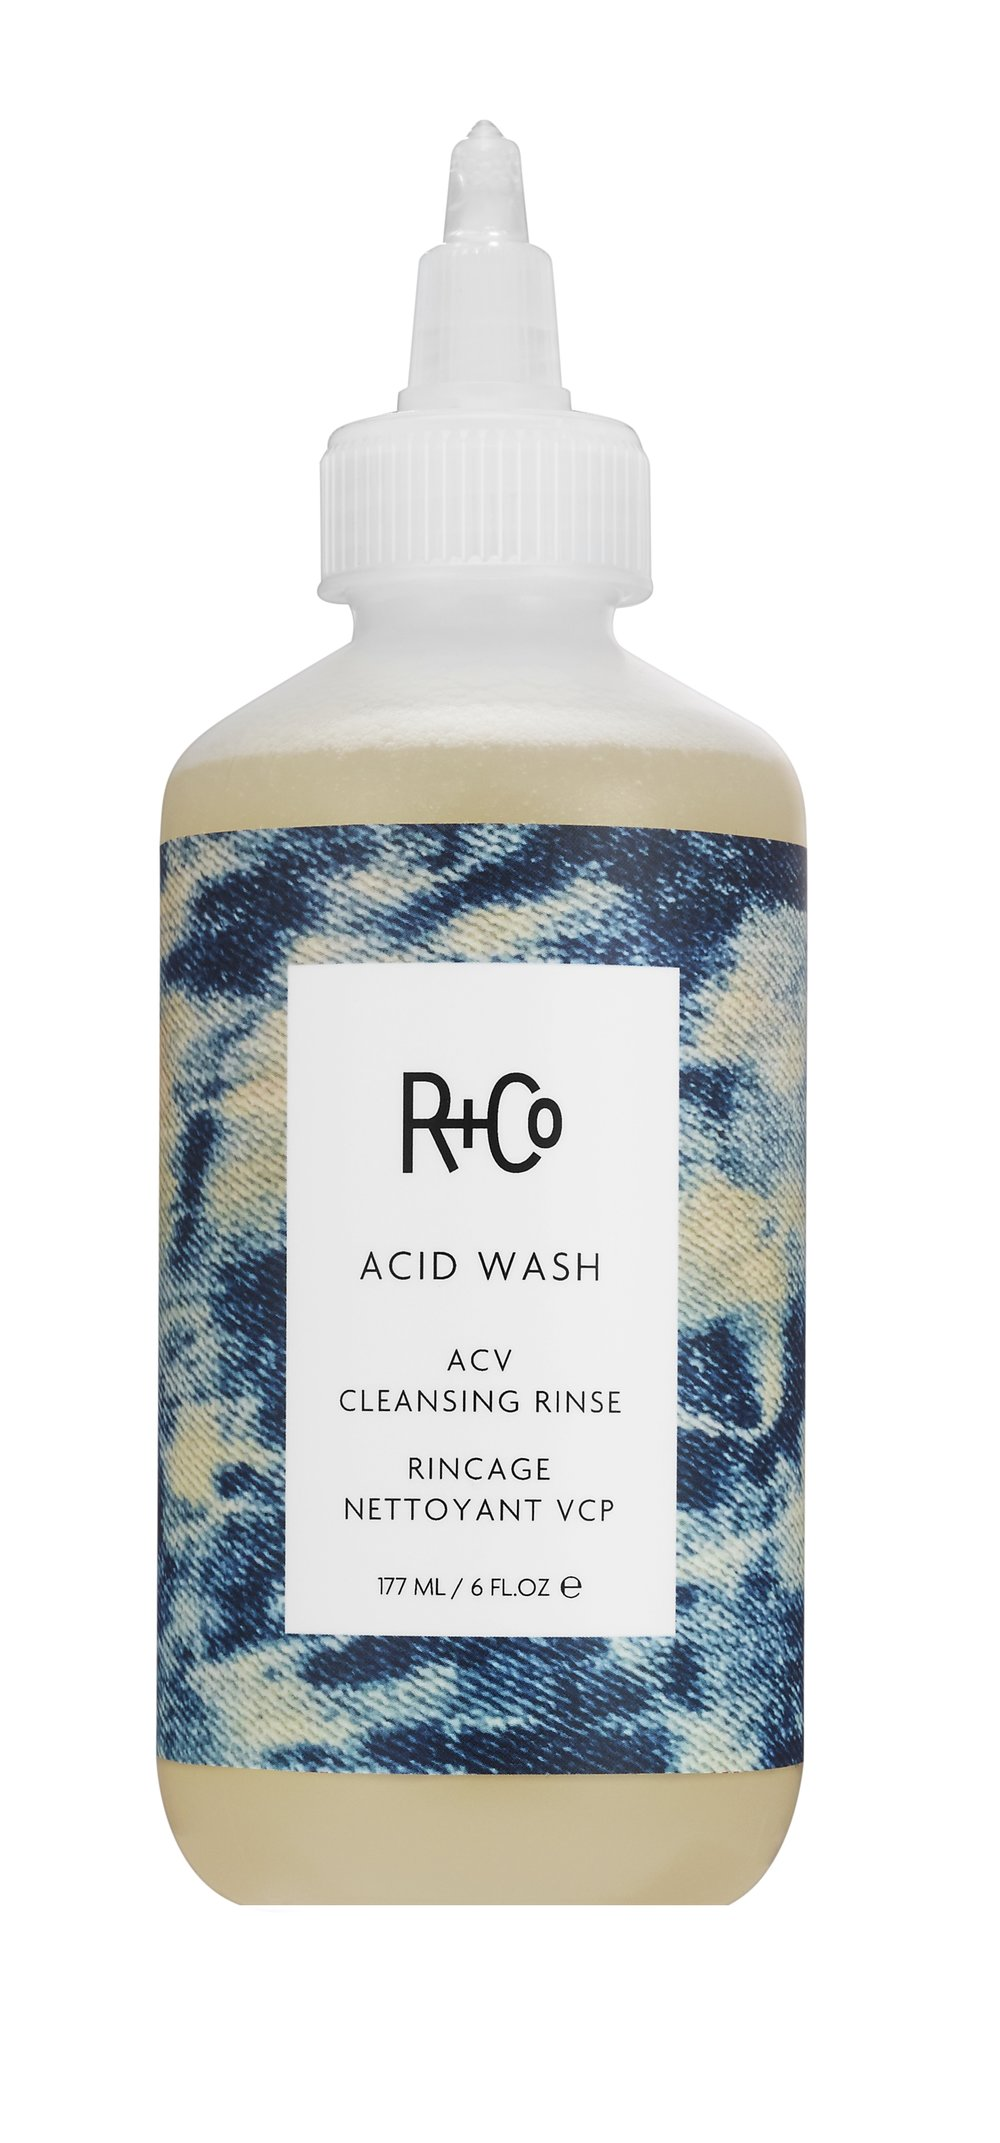 R & Co's new Acid Wash ($32.00)